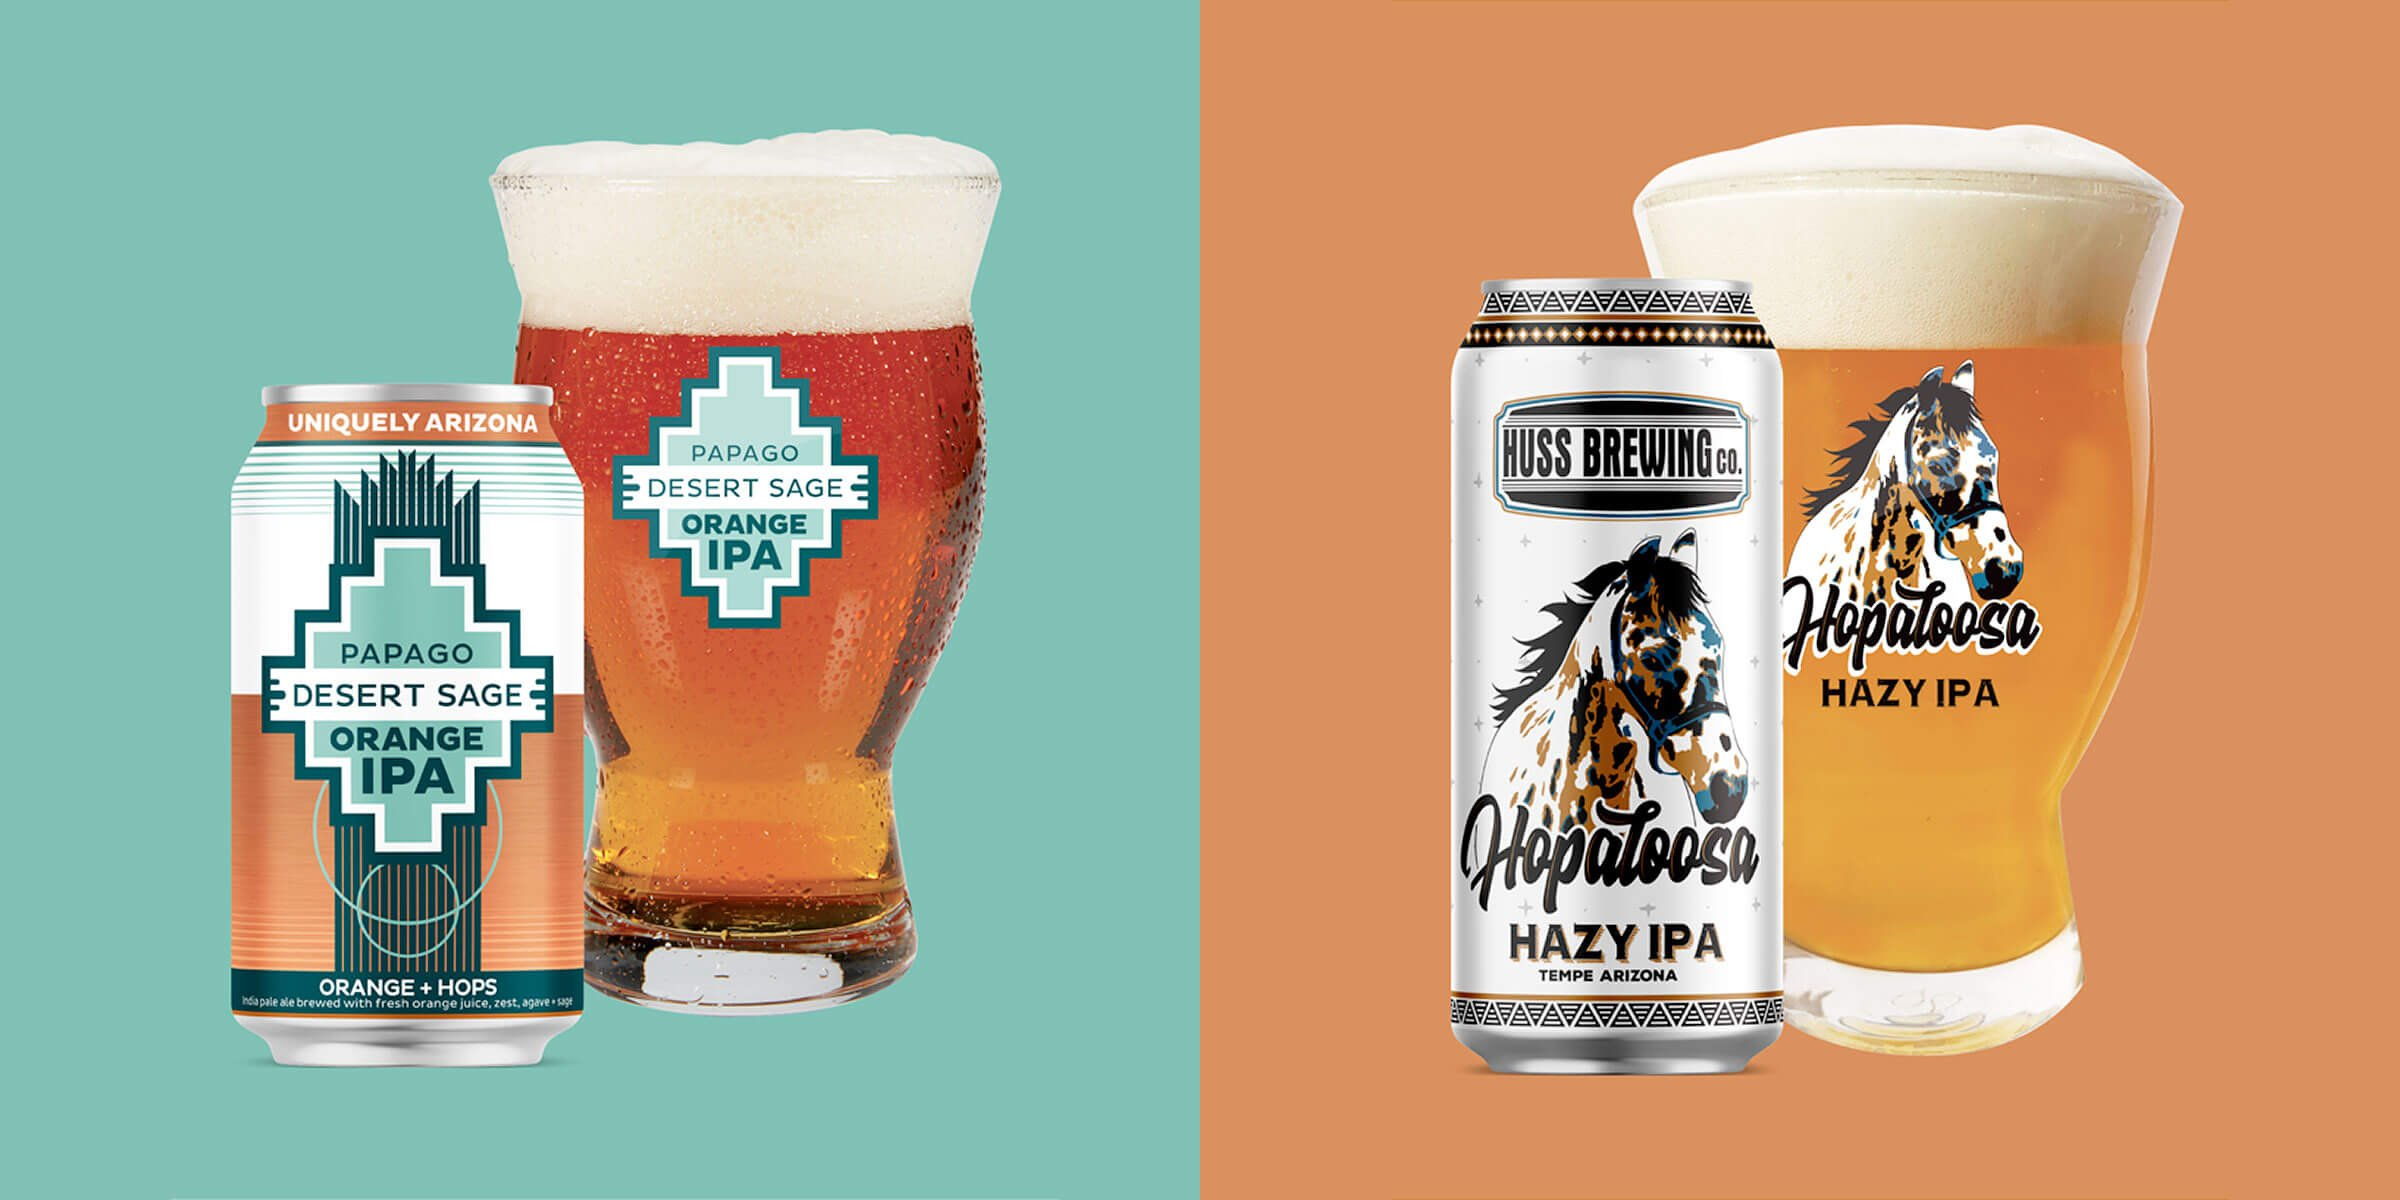 Arizona's own Huss Brewing Co. announced it's rolling out two new IPA craft beers, Hopaloosa Hazy and Papago Desert Sage Orange.